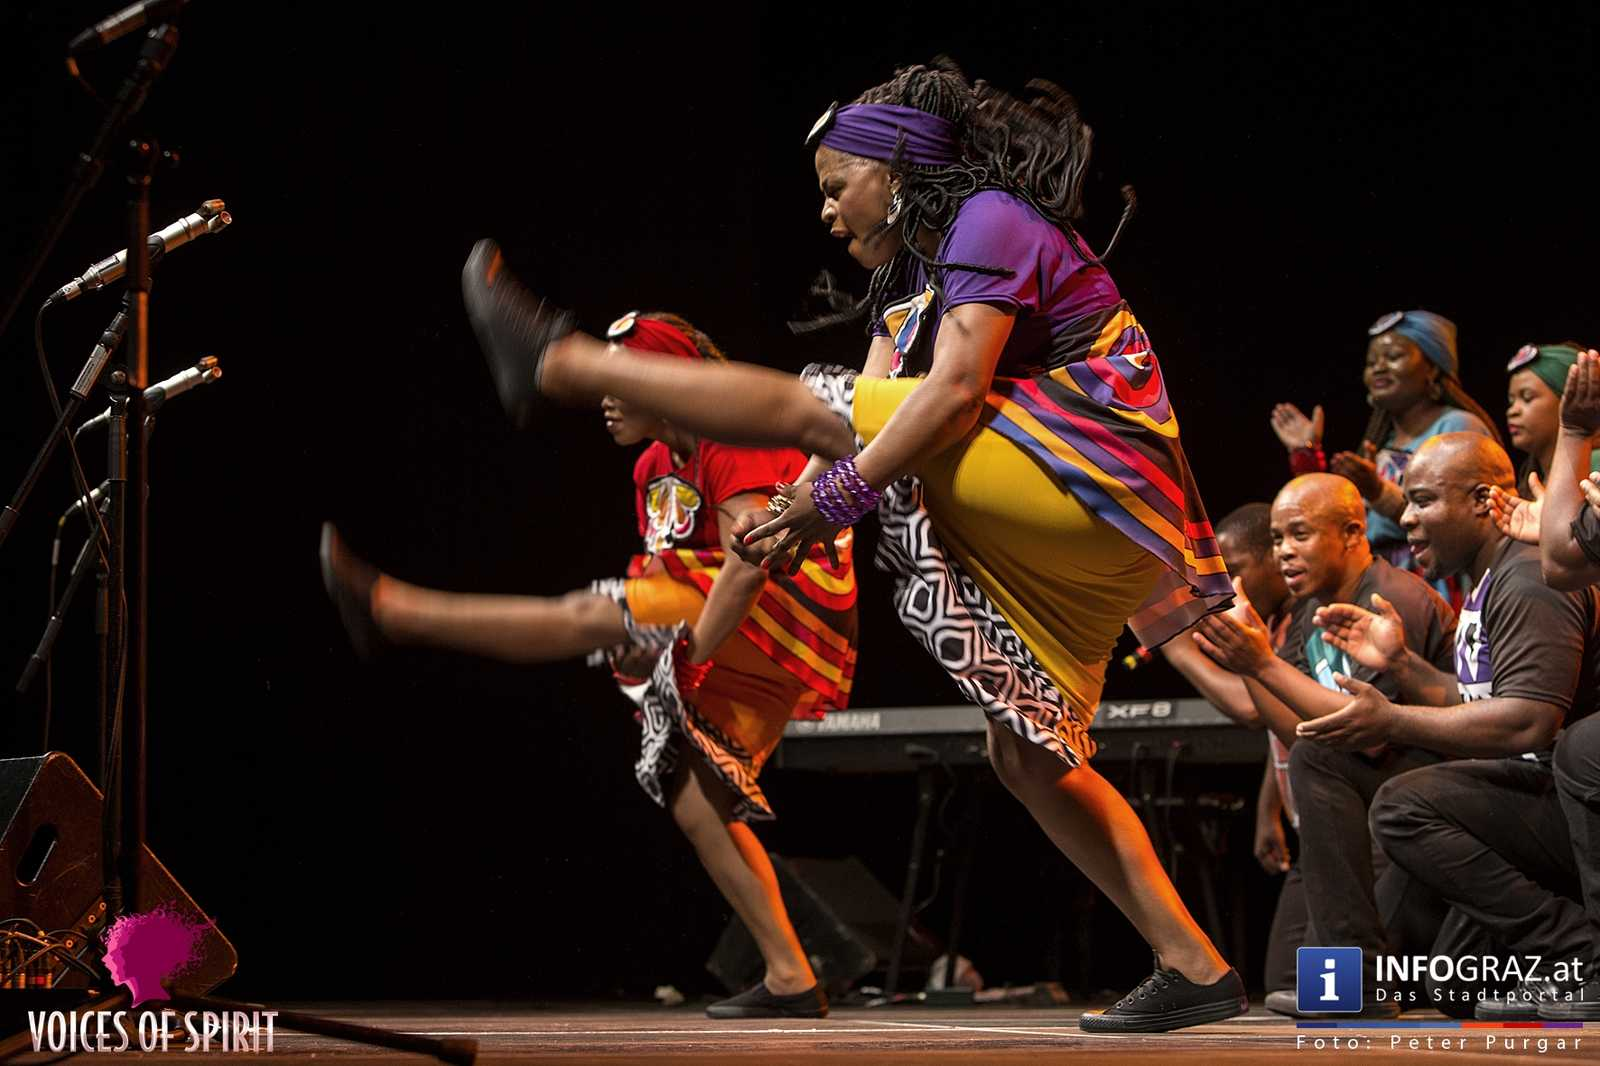 soweto gospel choir internationales chorfestival statdthalle graz voices of spirit eroeffnung festivals 2016 065